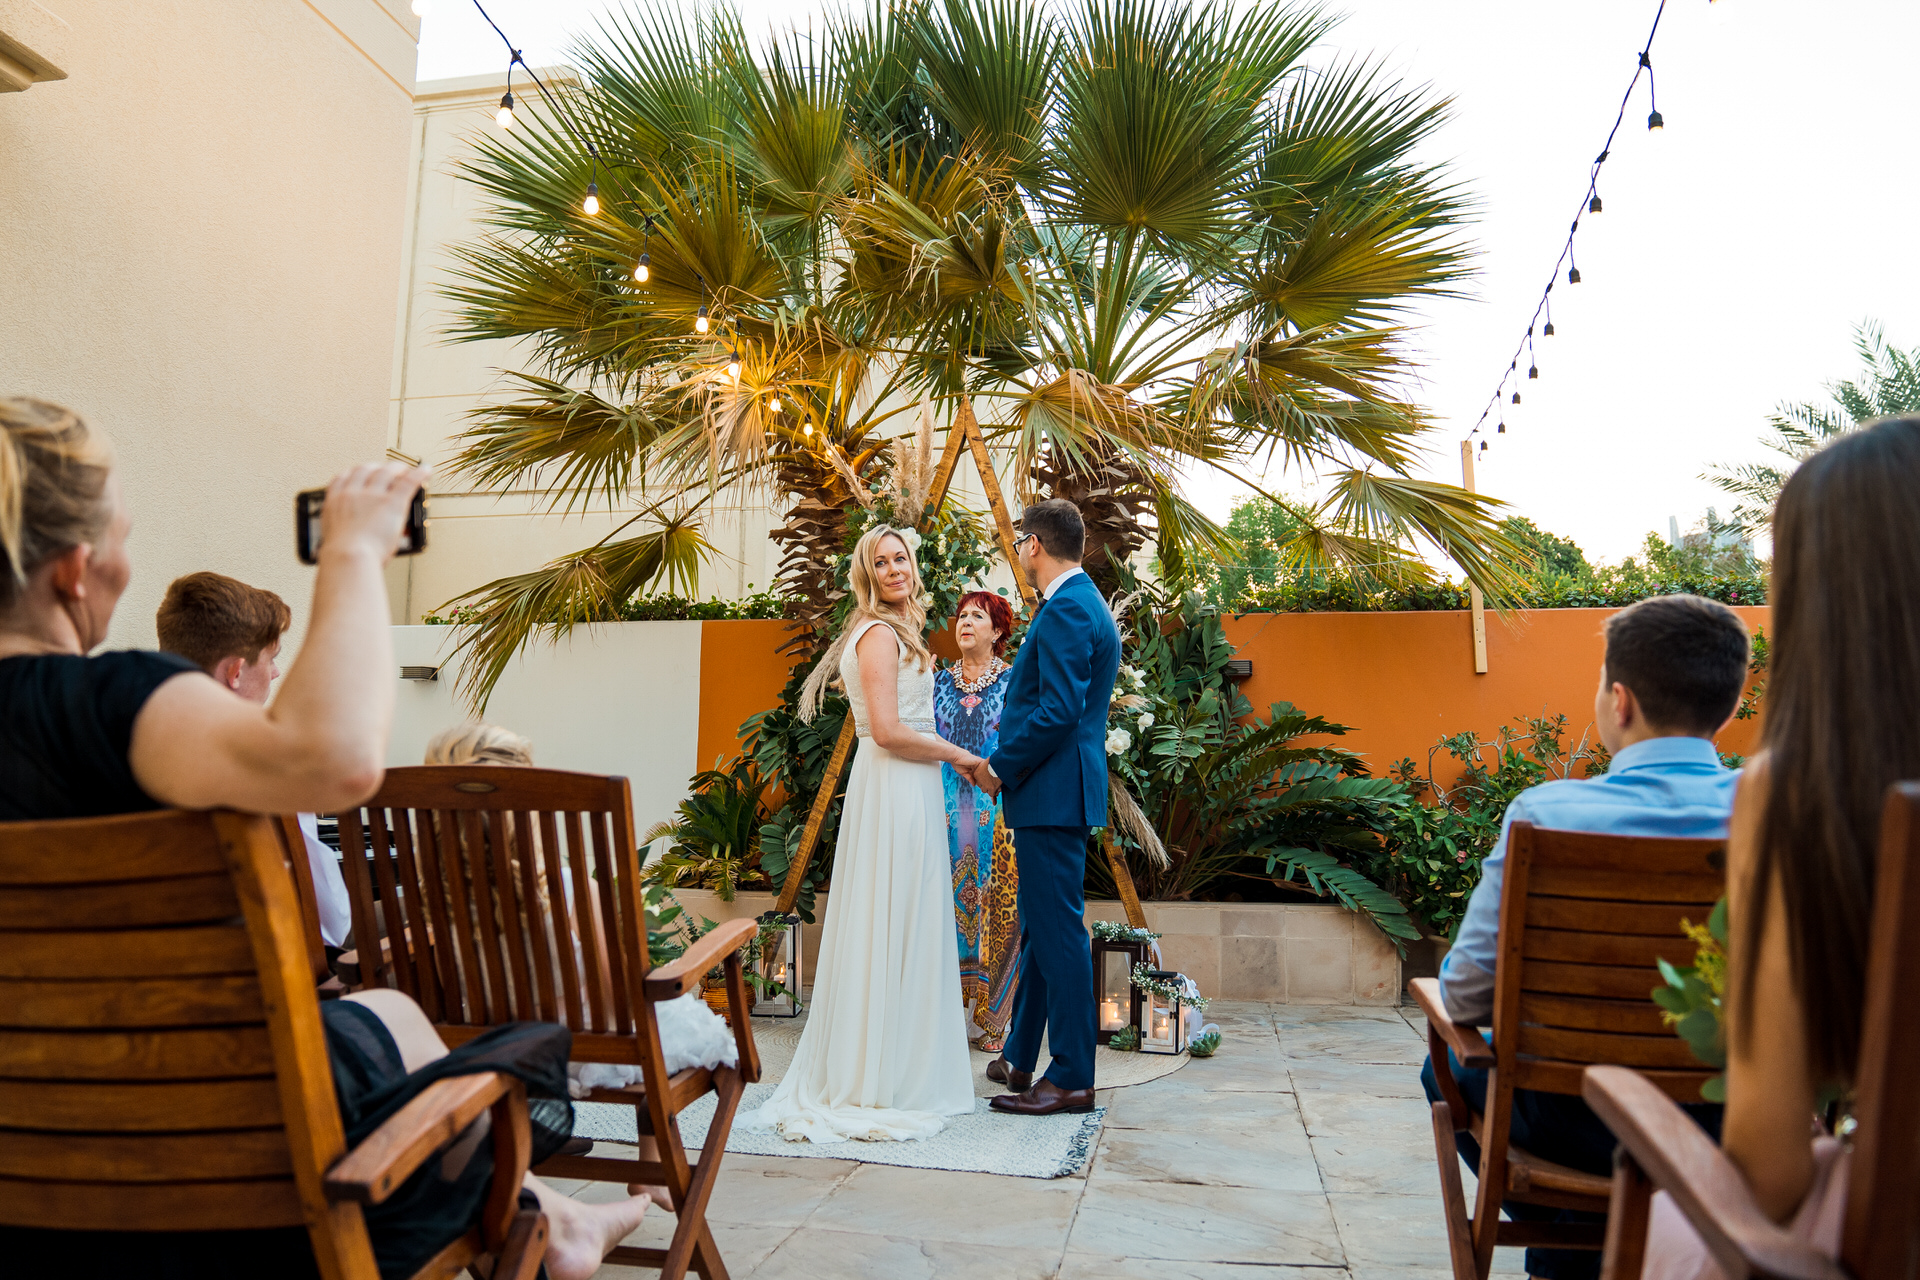 UAE Elopement Ceremony Picture | The bride and groom share an intimate moment